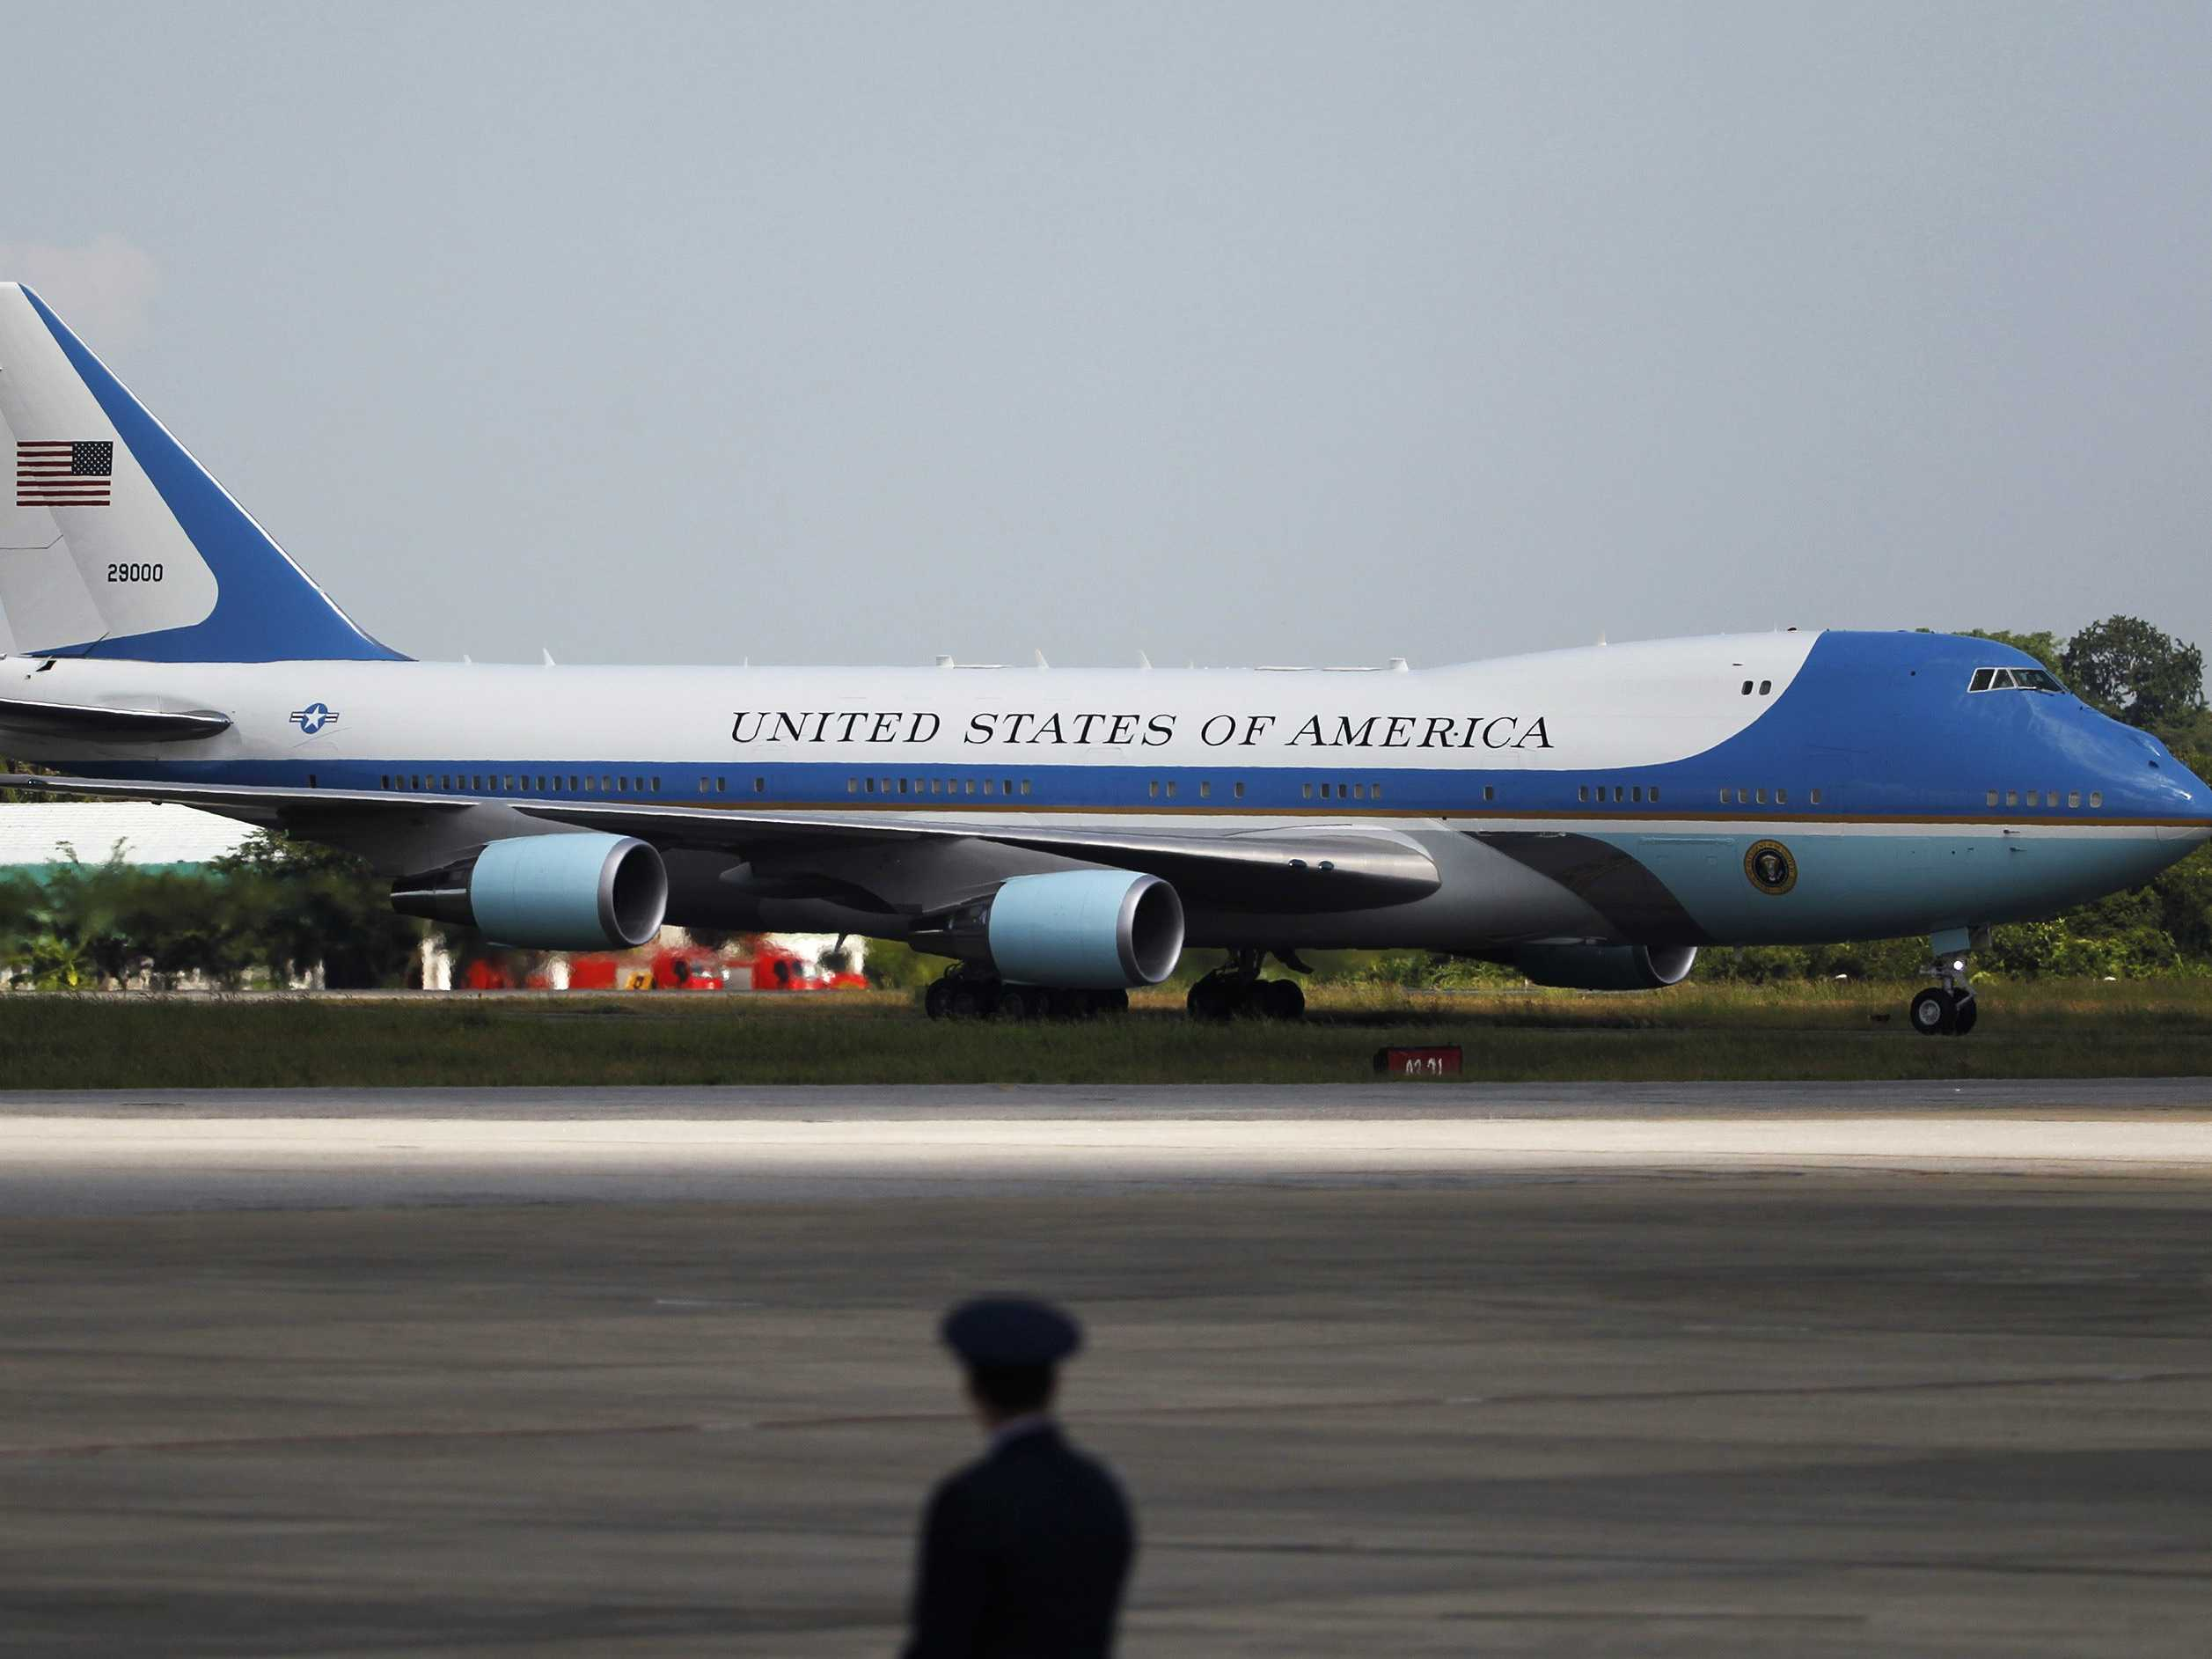 Air force One boeing 747-8